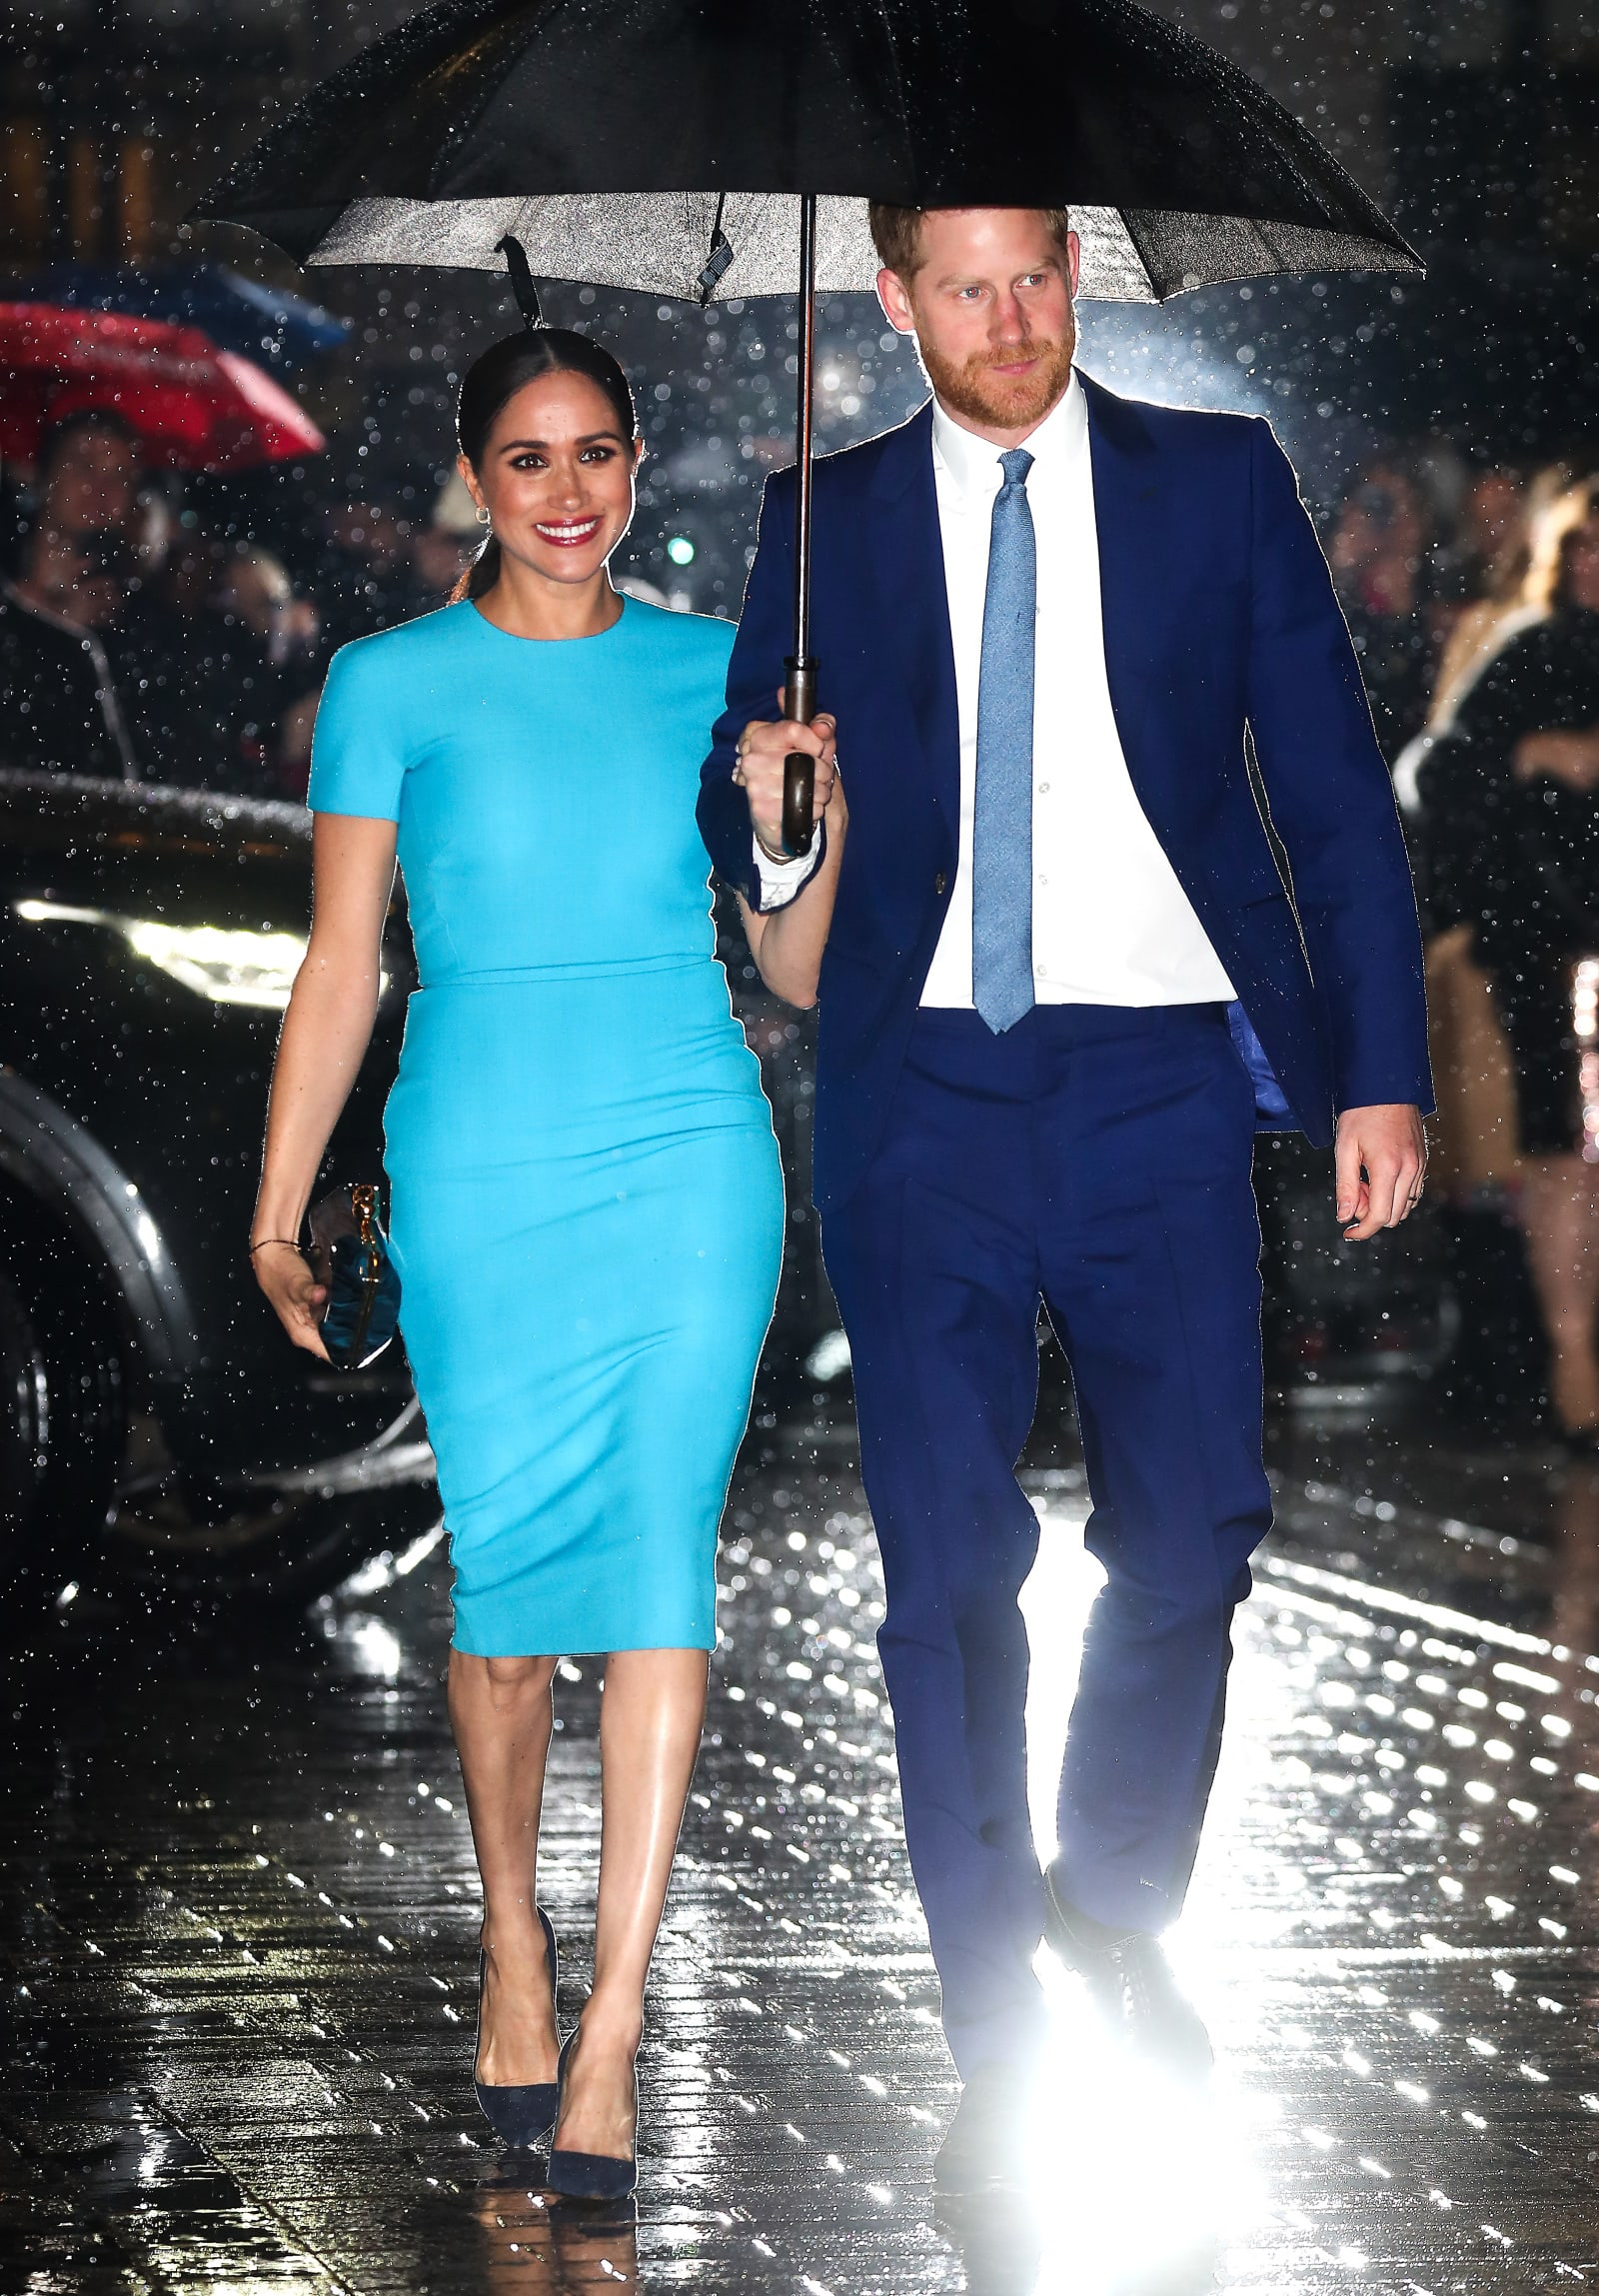 Meghan Markle, Duchess of Sussex, Style